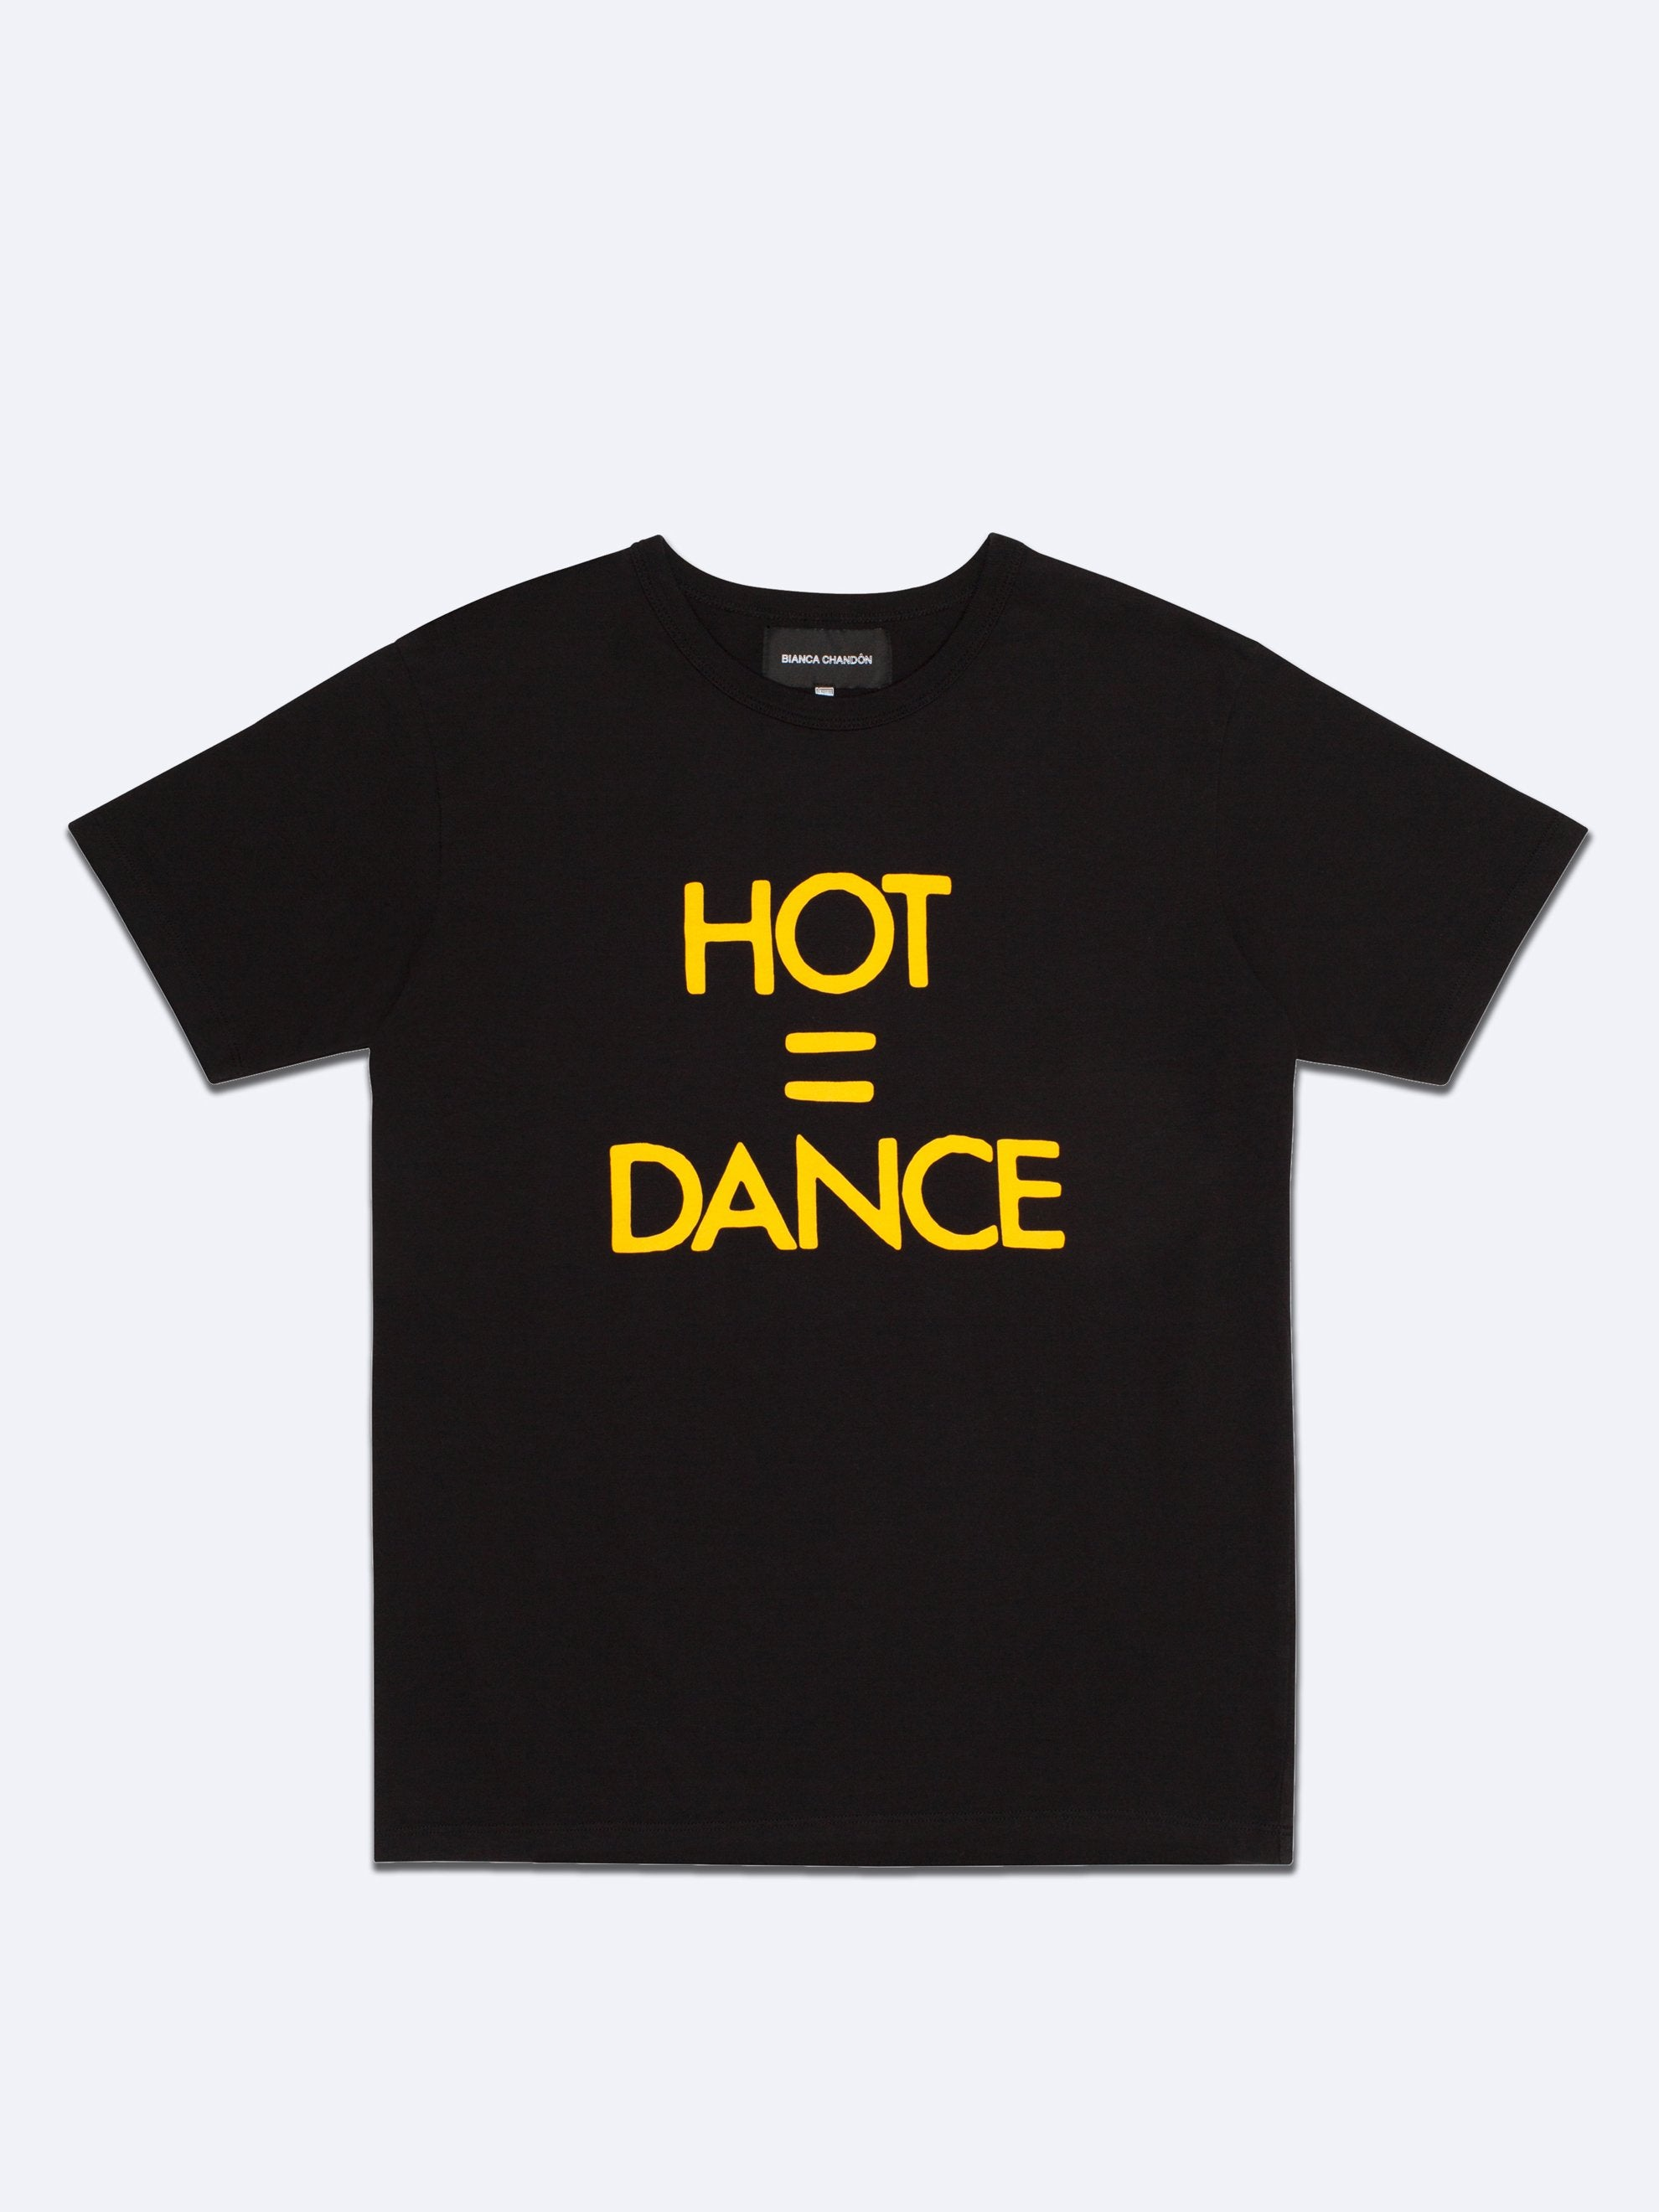 Black Hot=Dance T-Shirt (Anniversary Reissue) 1